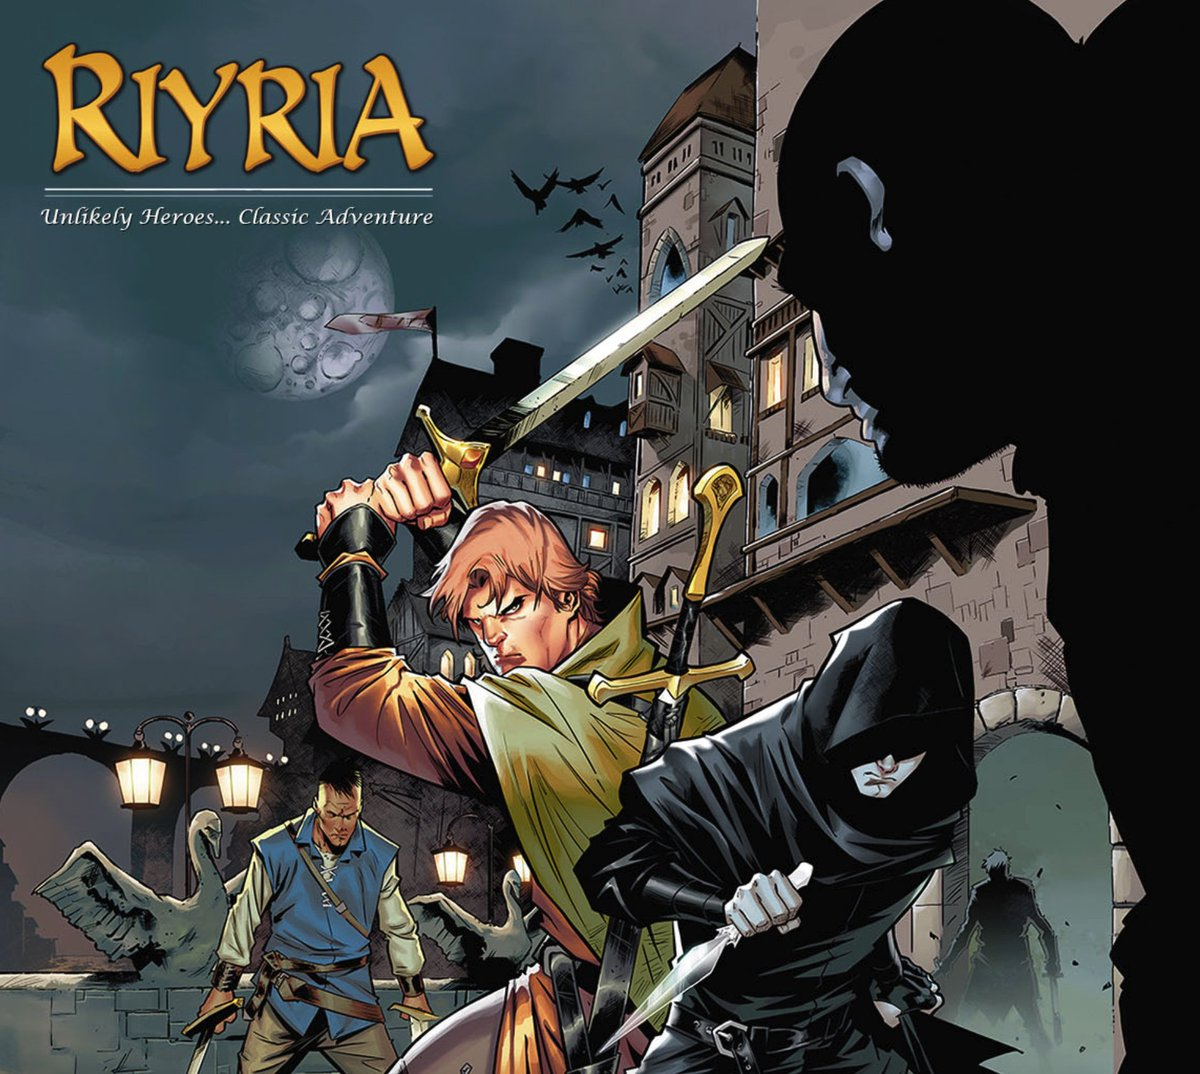 A Riyria graphic novel in production! Artist will be Nigel Raynor Learn more at: https://t.co/CWZM81godX https://t.co/9dkN0qQUlP